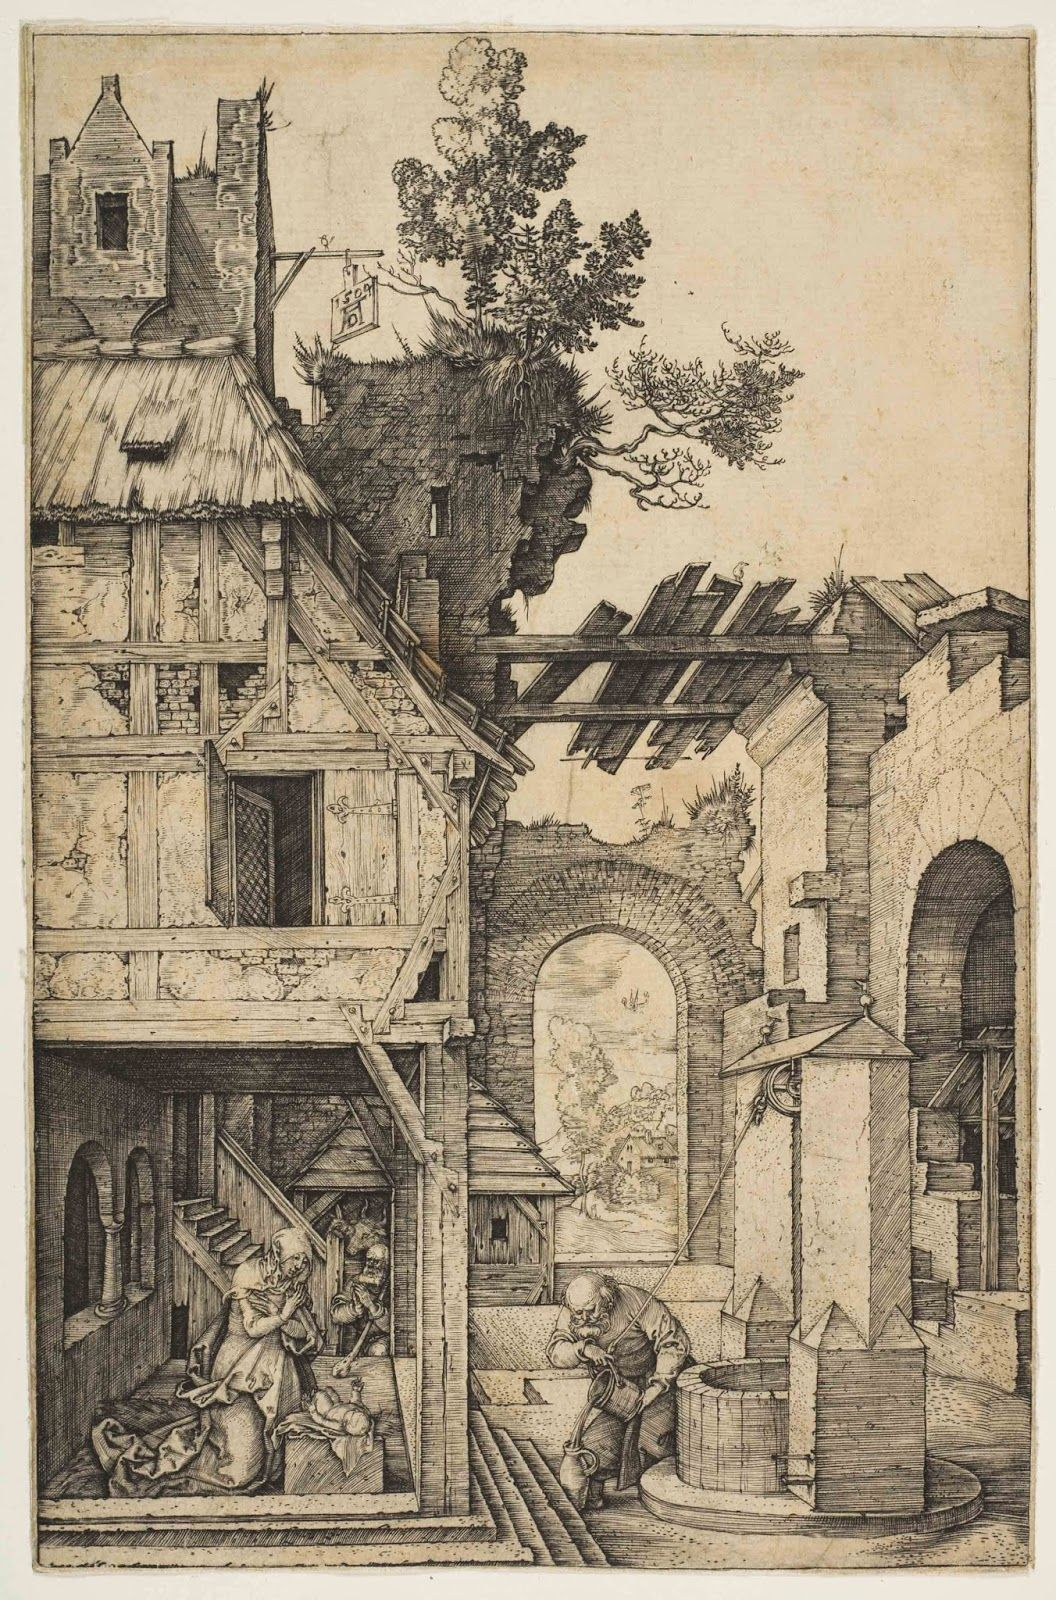 Pin By Kelly Anderson On Albrecht Durer